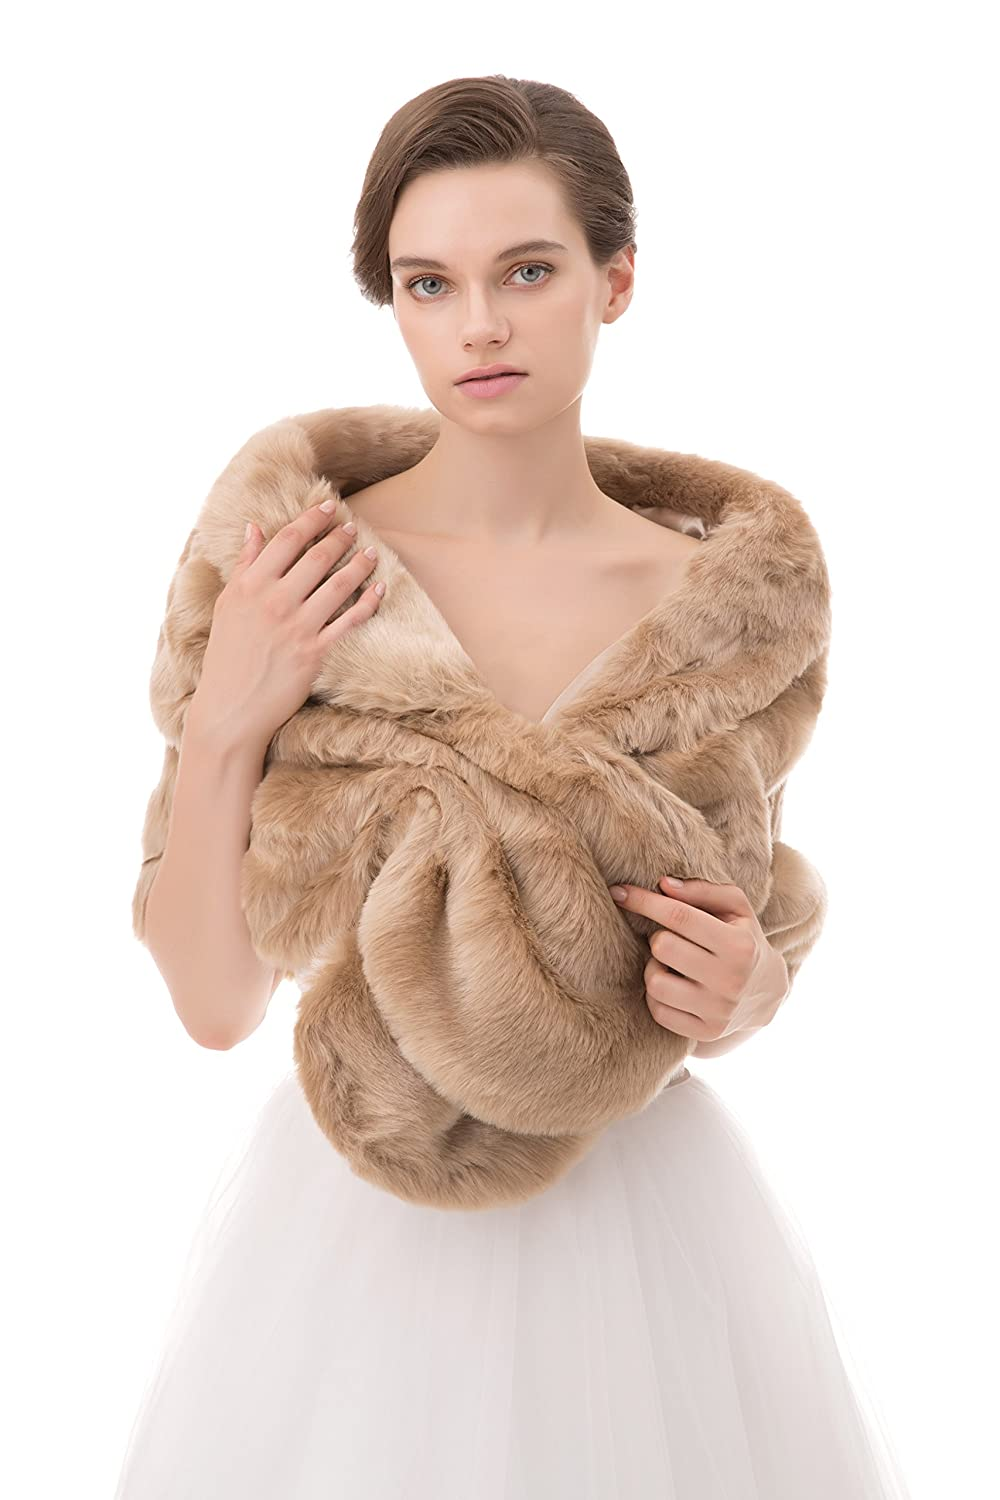 Wowbridal Women's Winter Warm Faux Fur Shawl Coat Jacket Parka Outerwear Tops Wrap